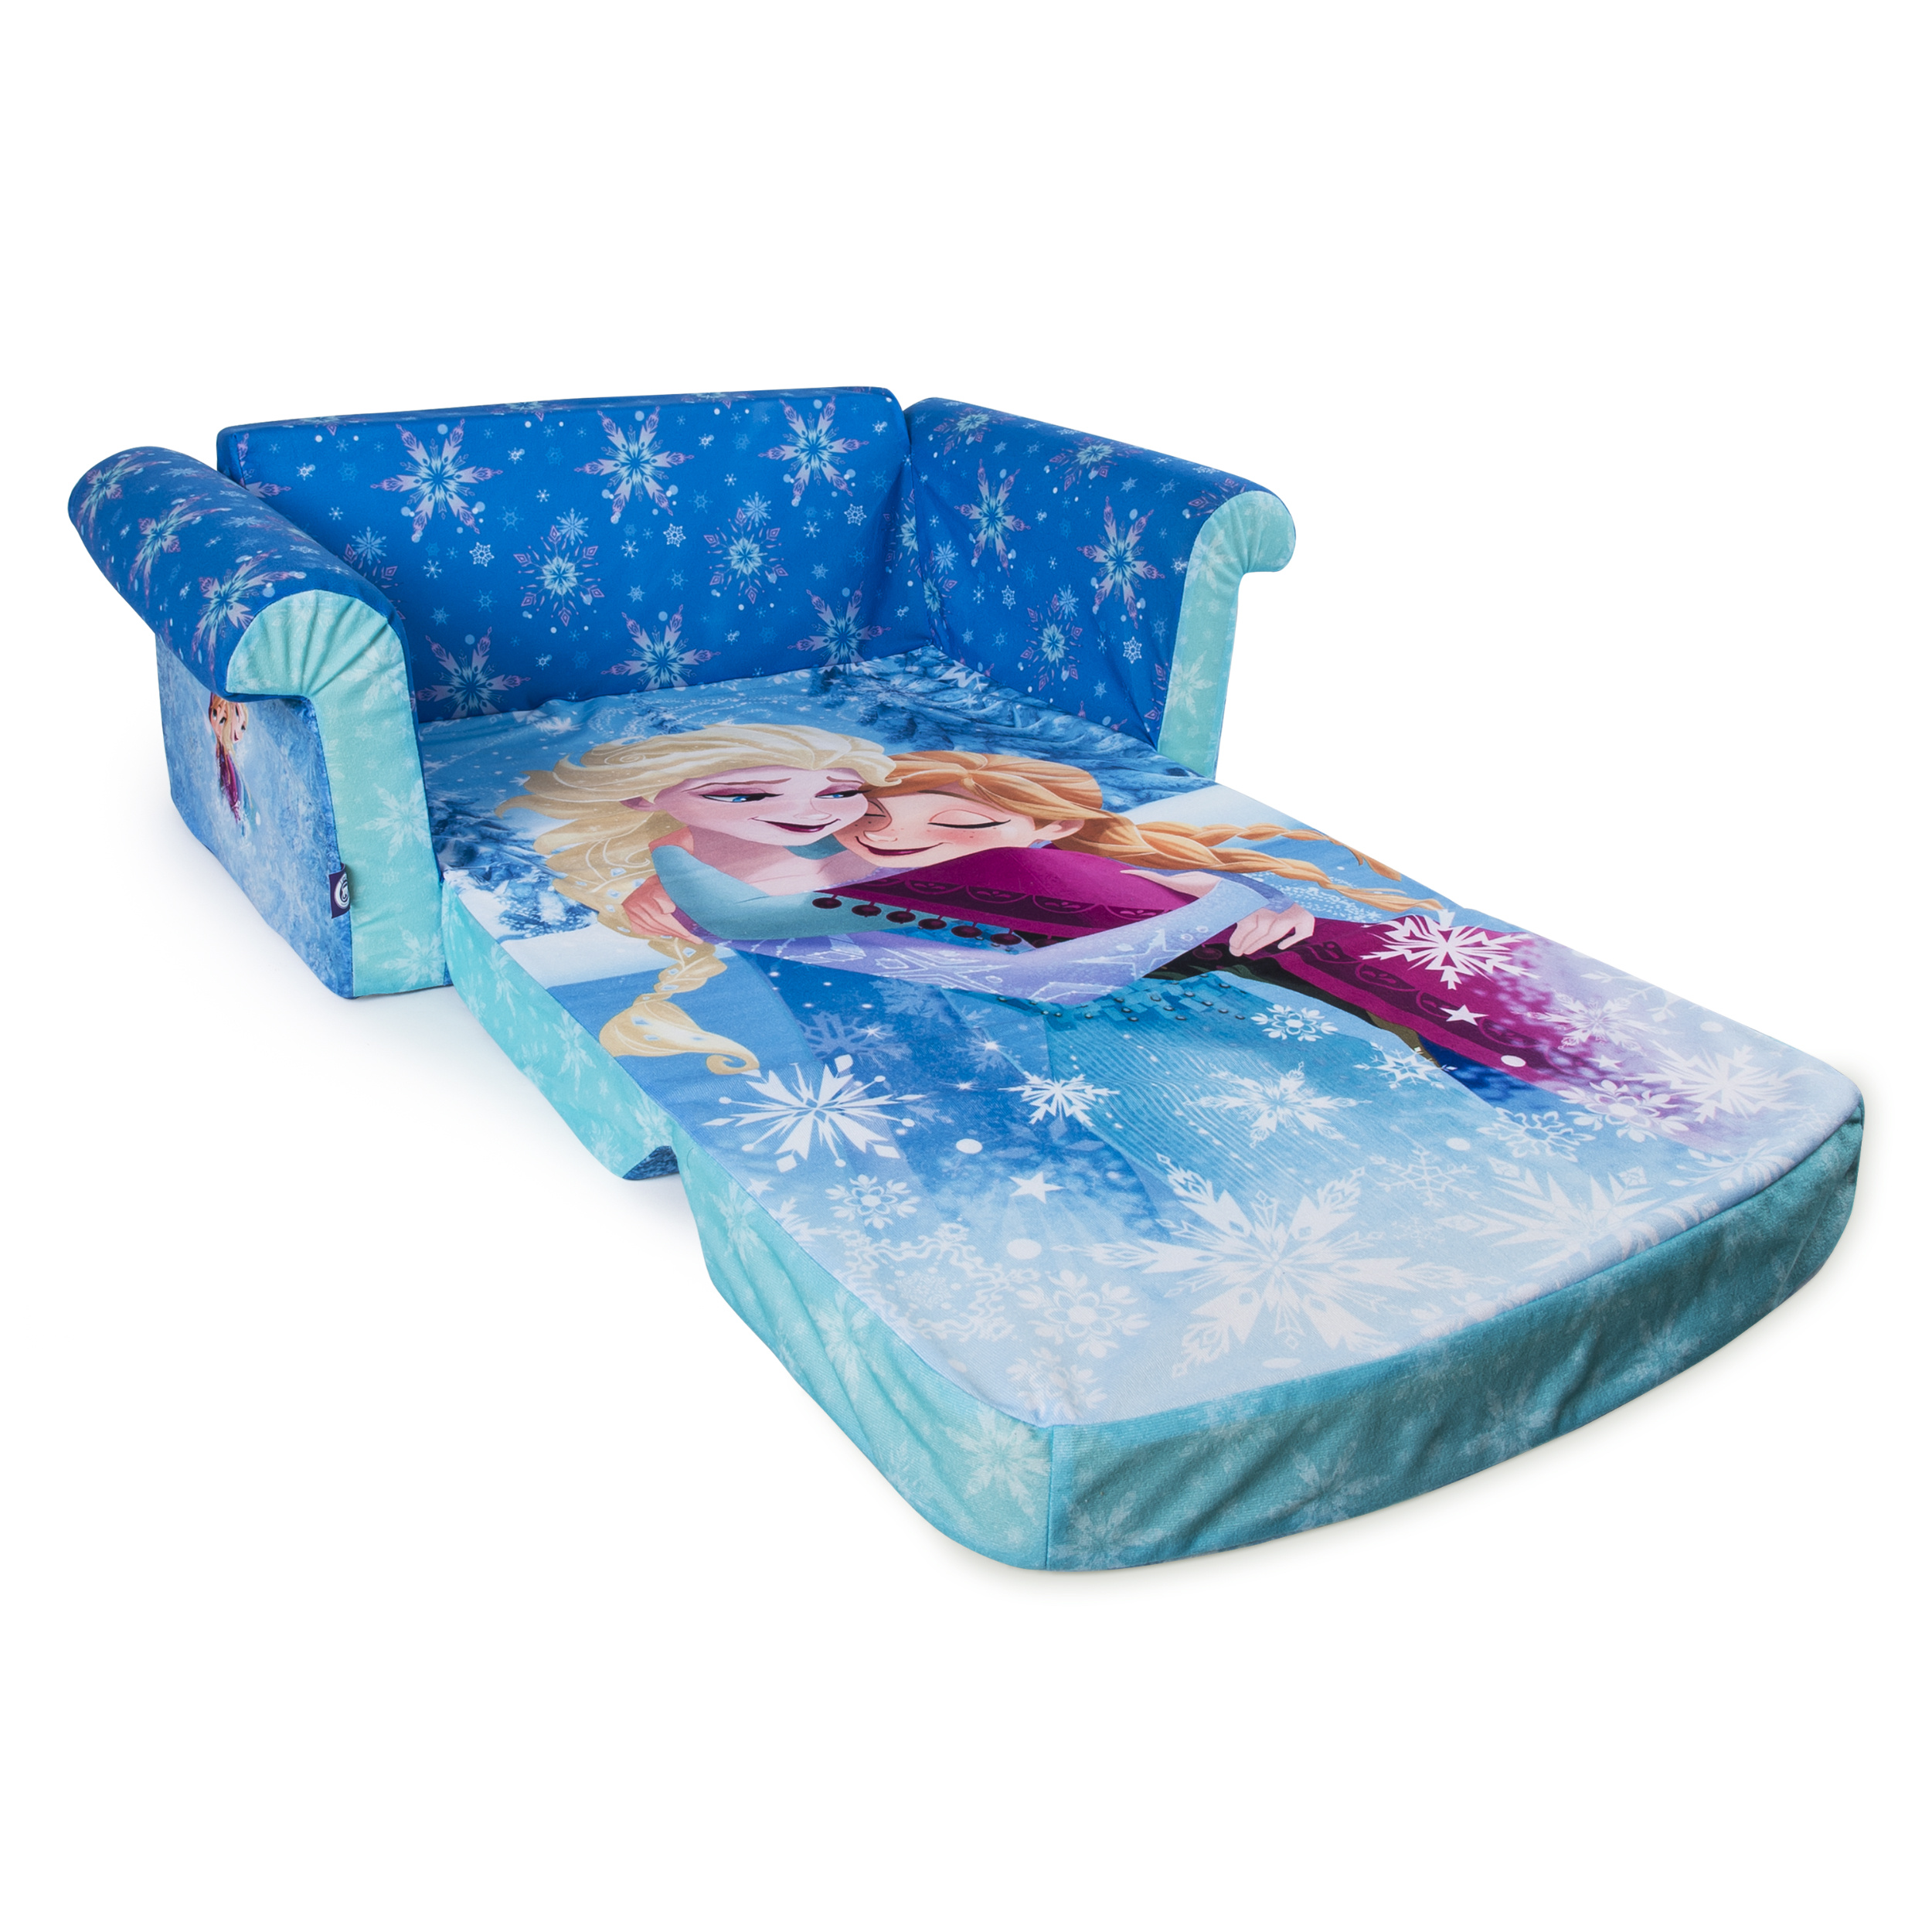 disney princess flip out sofa moroccan bed for sale frozen bedroom furniture ideas thesofa